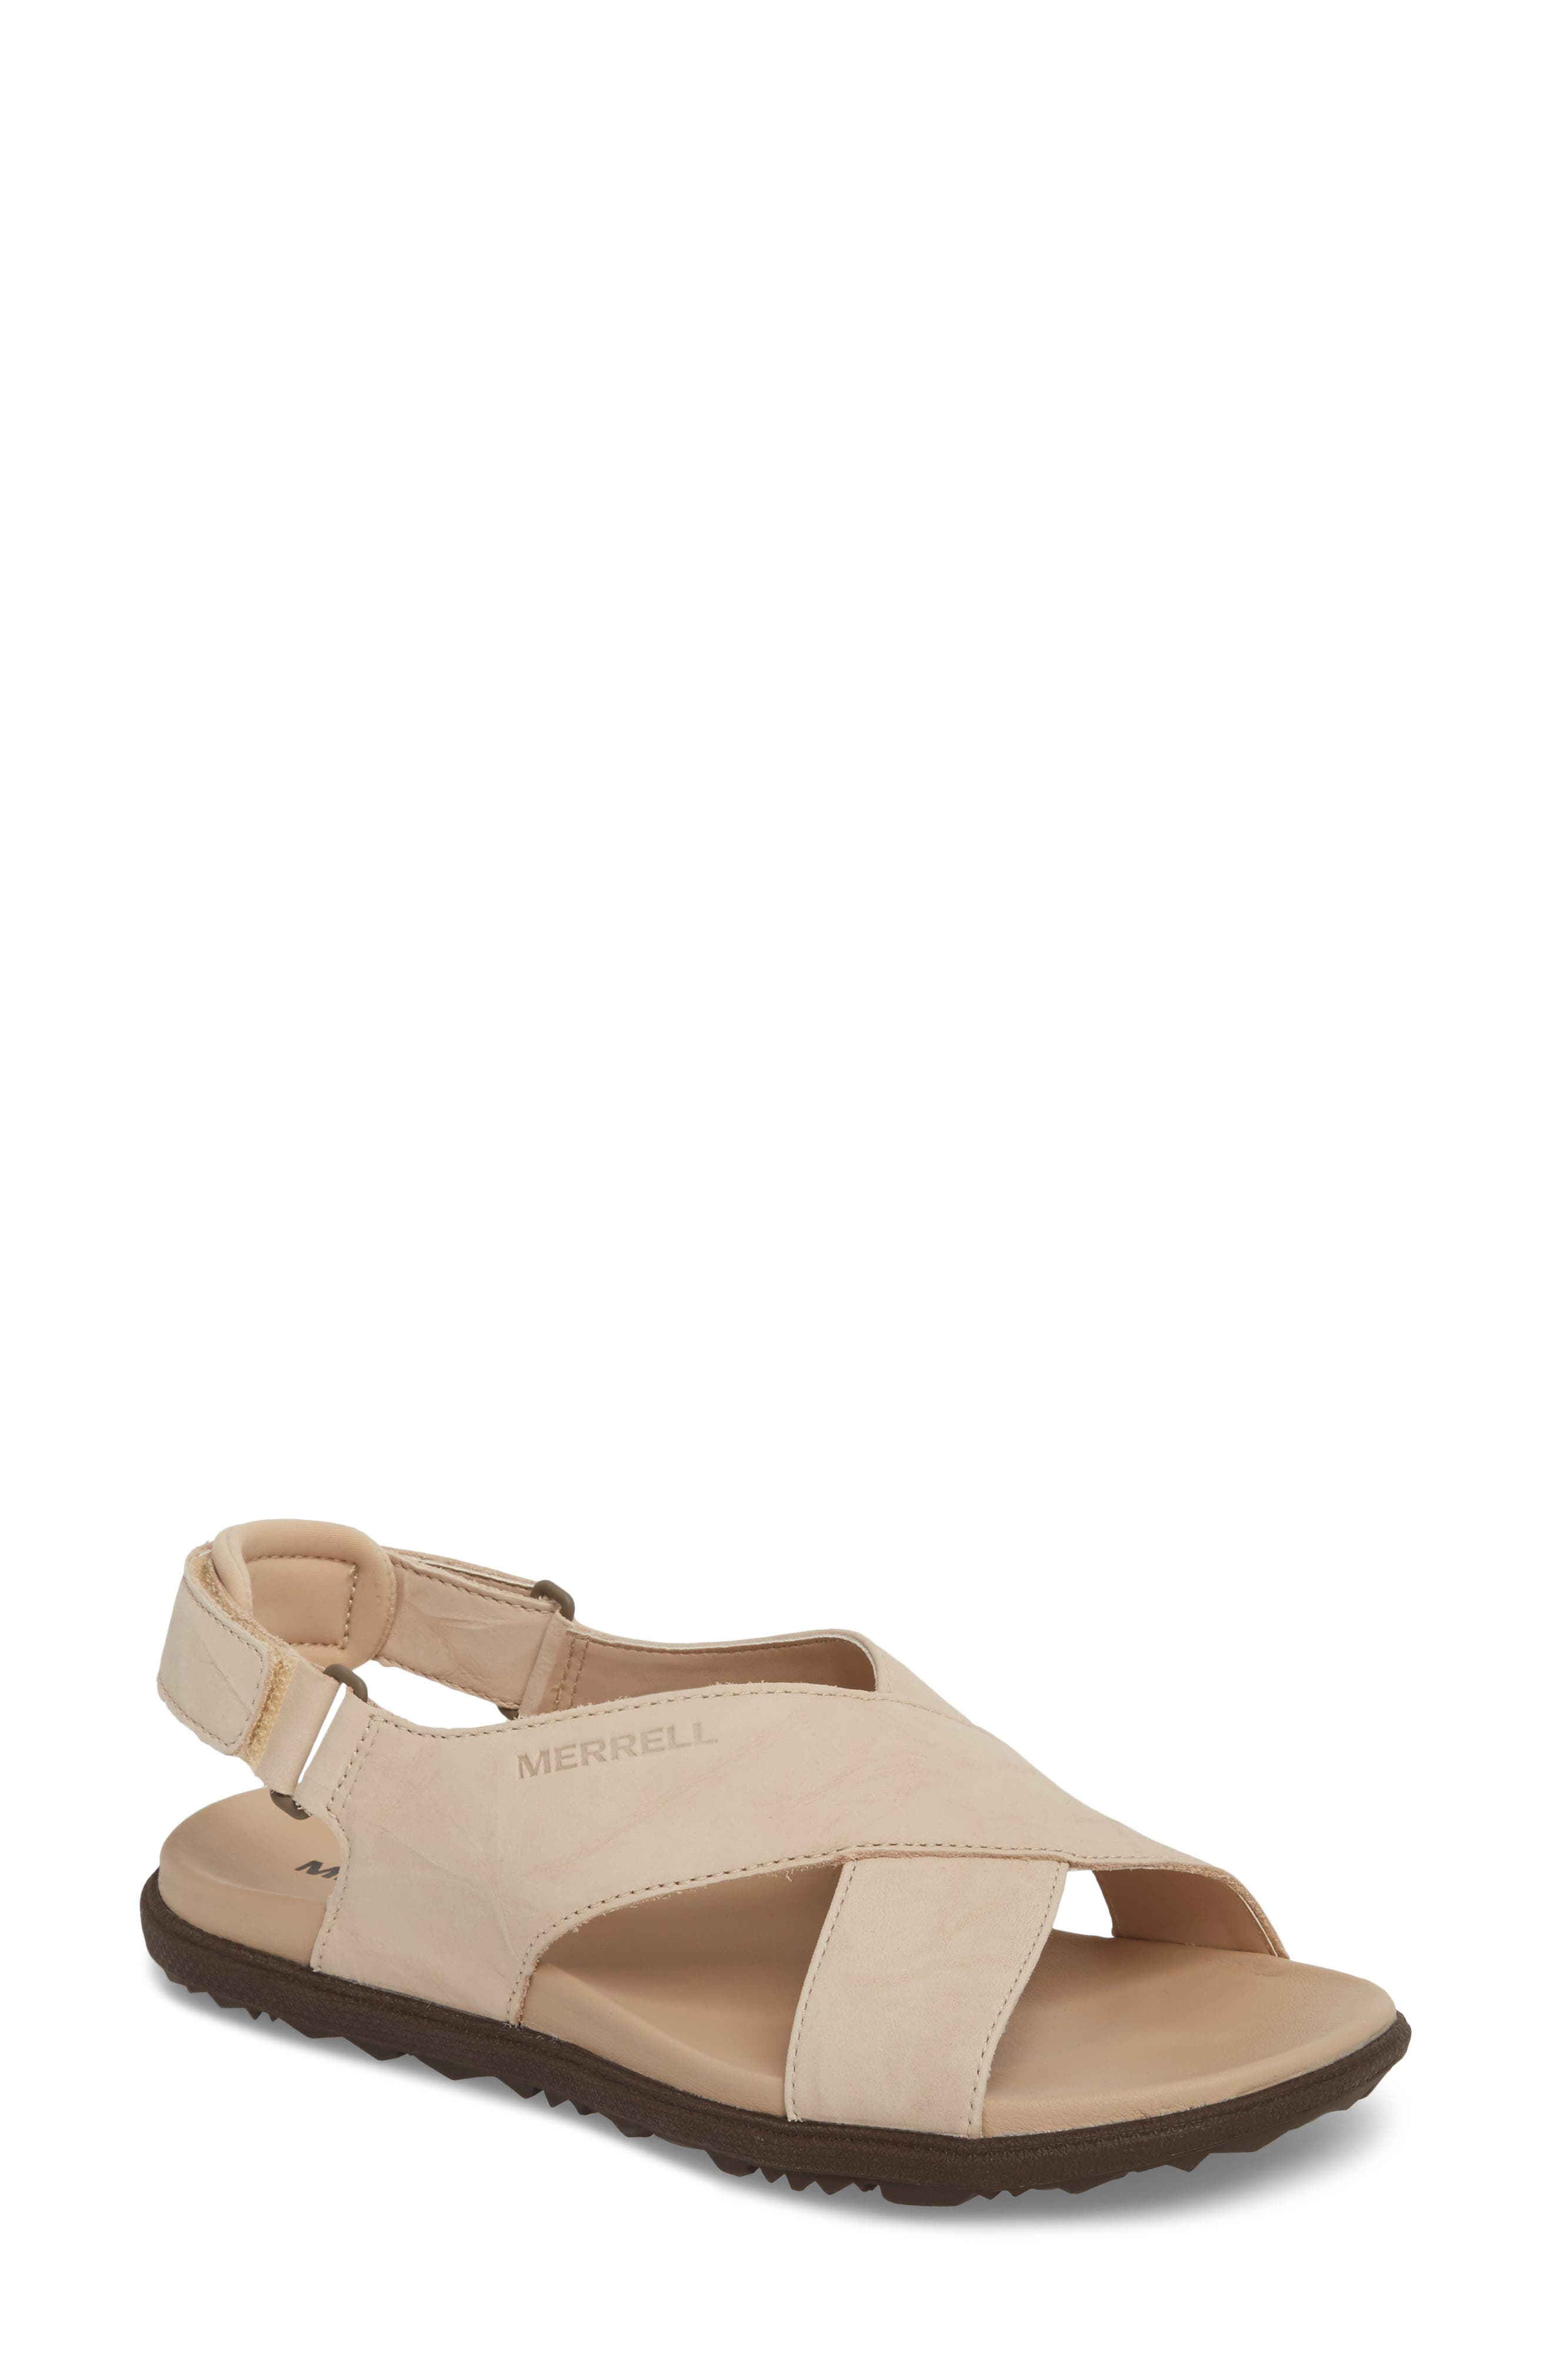 Around Town Sunvue Sandal,                             Main thumbnail 1, color,                             Natural Tan